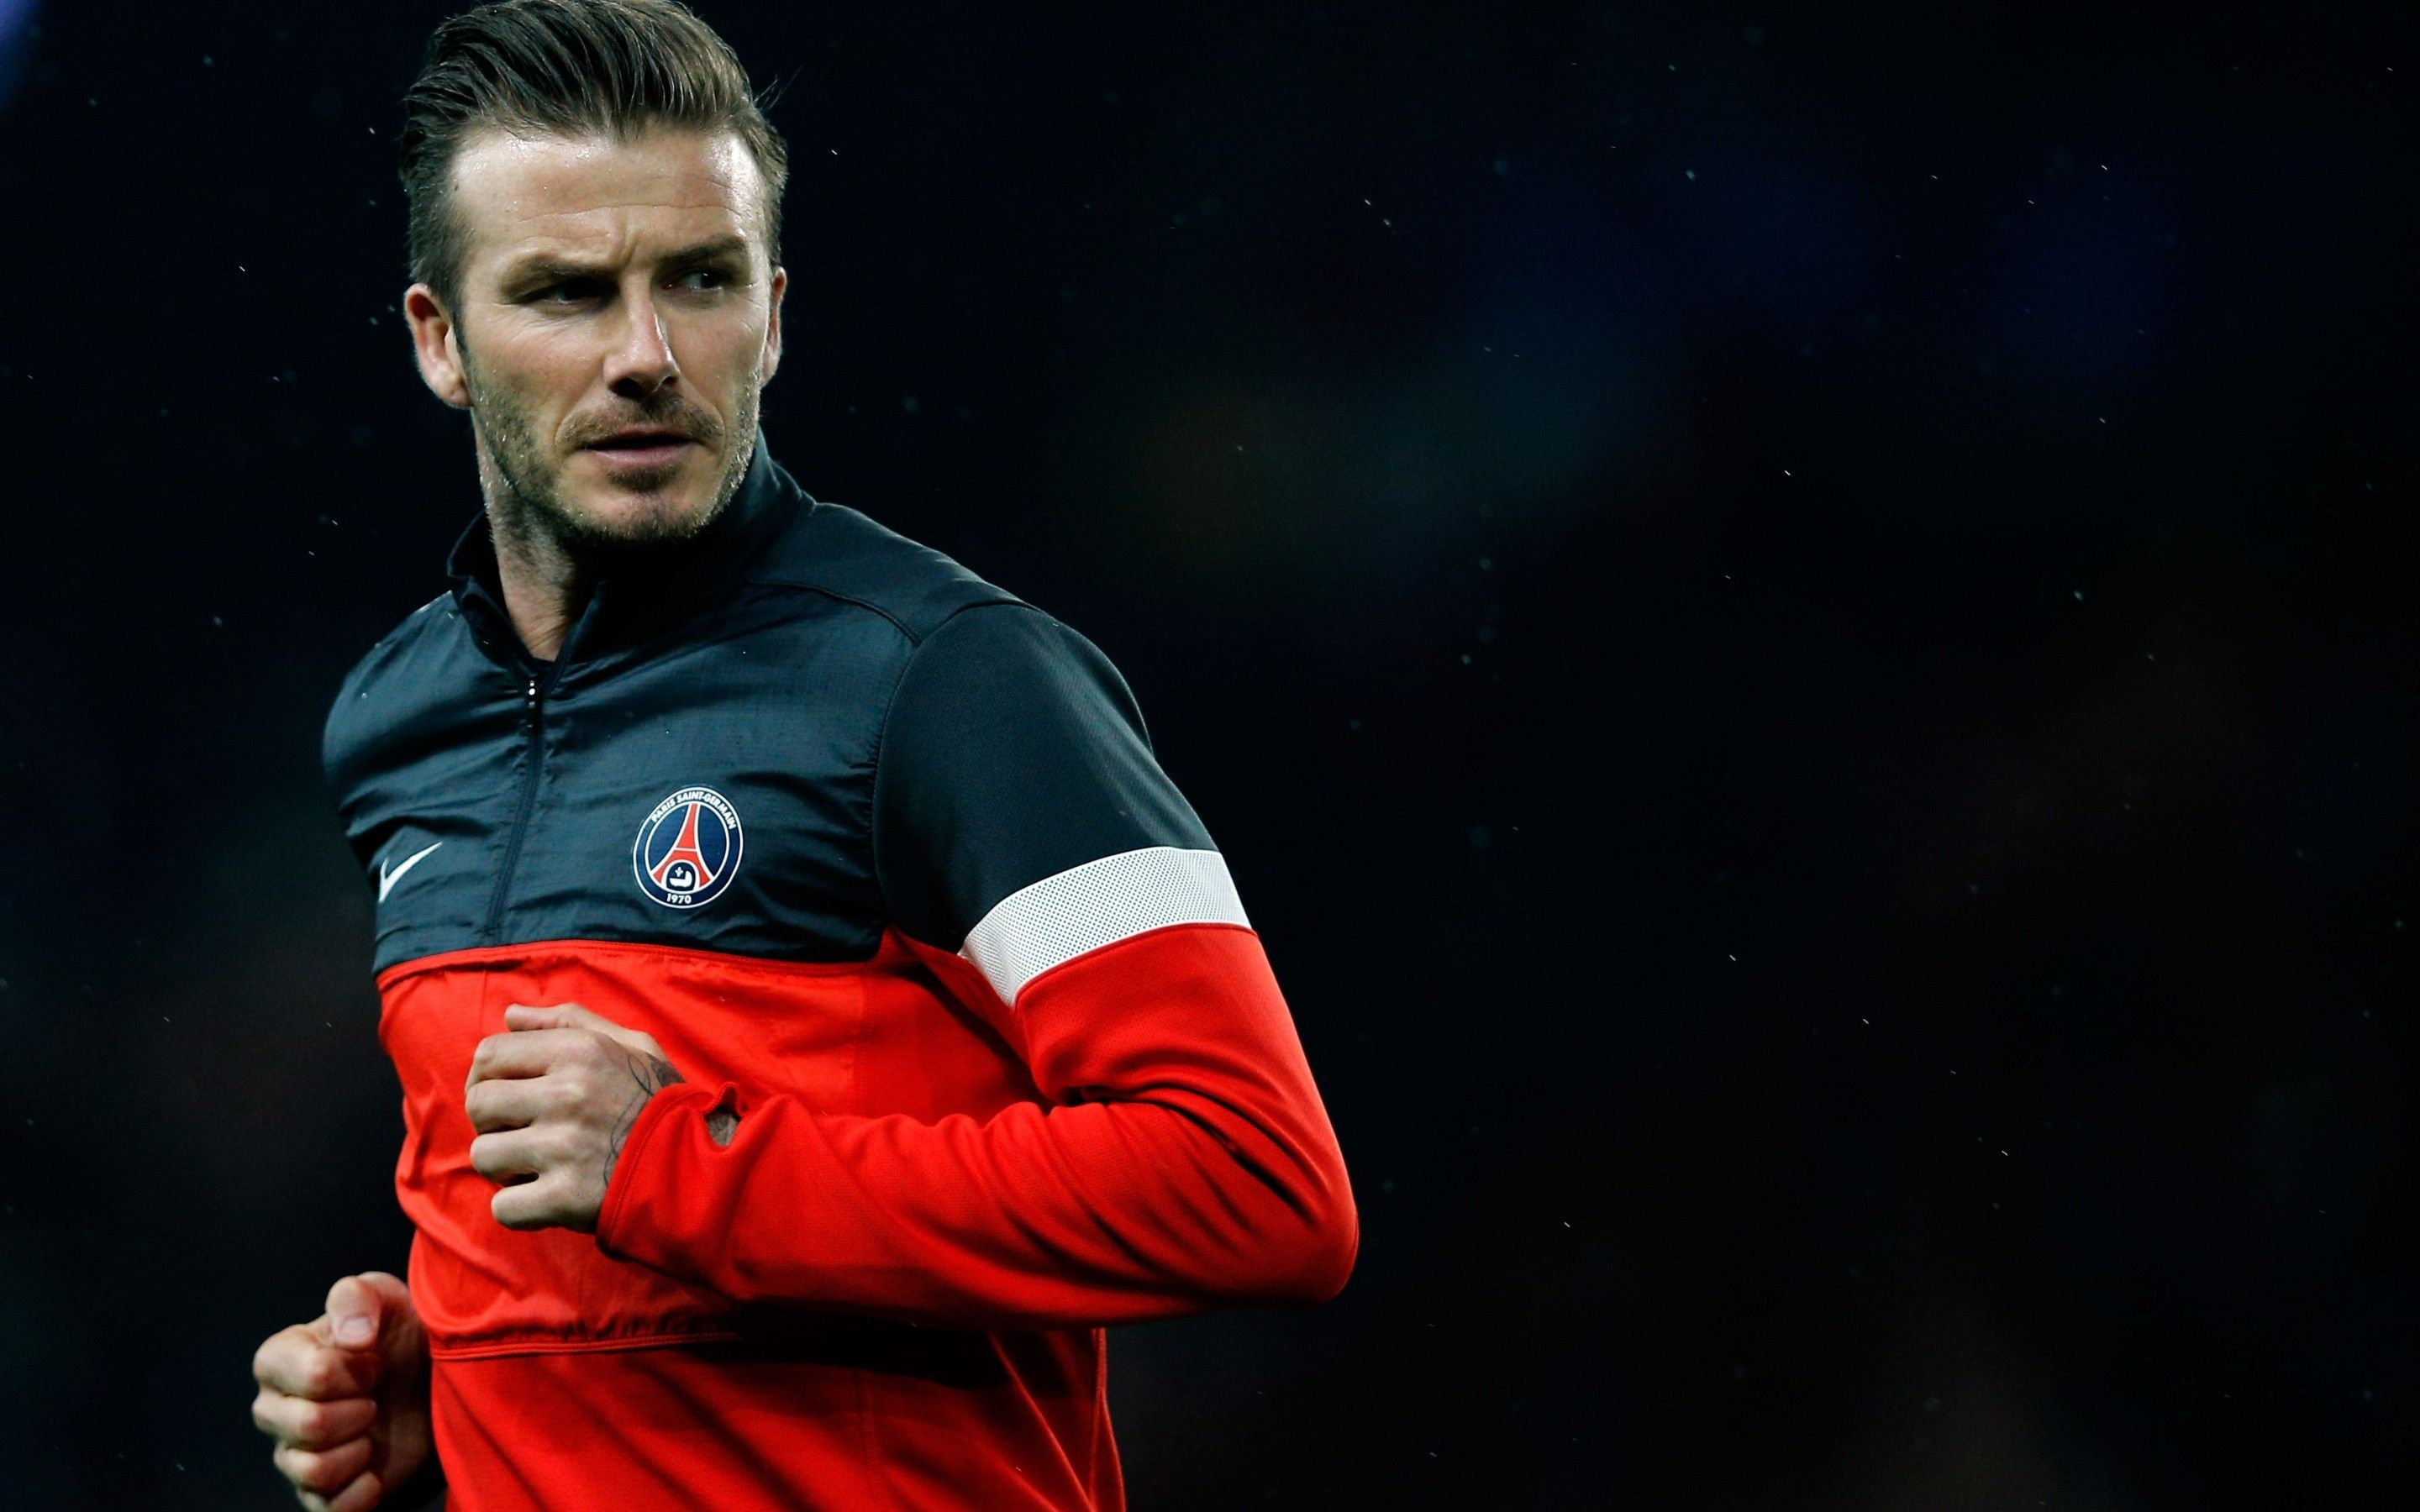 Download Free 3d Live Wallpaper For Windows Xp Download David Beckham Manchester United Wallpaper Gallery